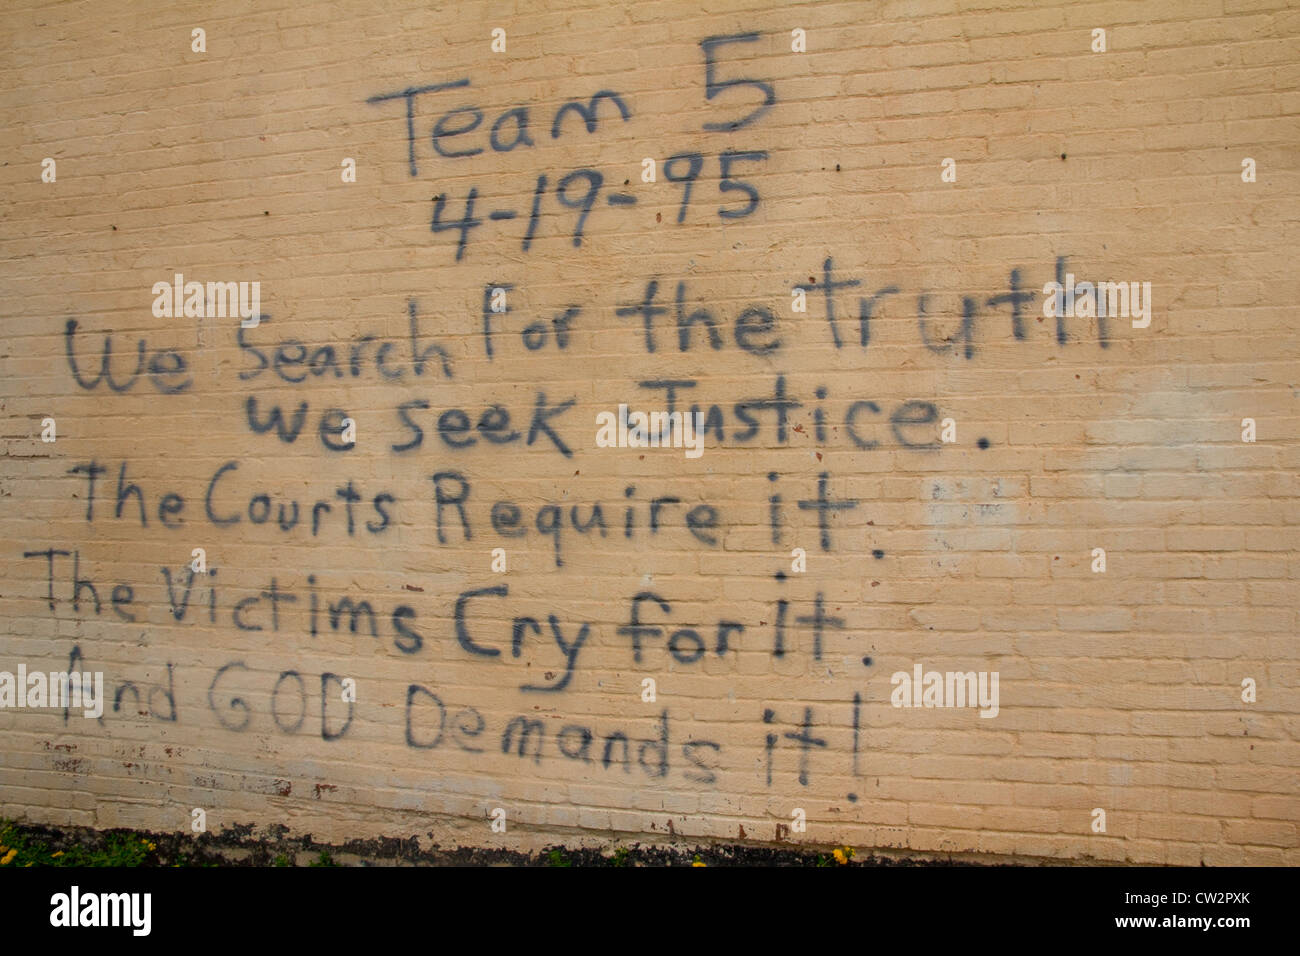 Inscription scrawled by rescuers on wall of Journal Record Building, day of the tragic 1995 bombing in Oklahoma Stock Photo